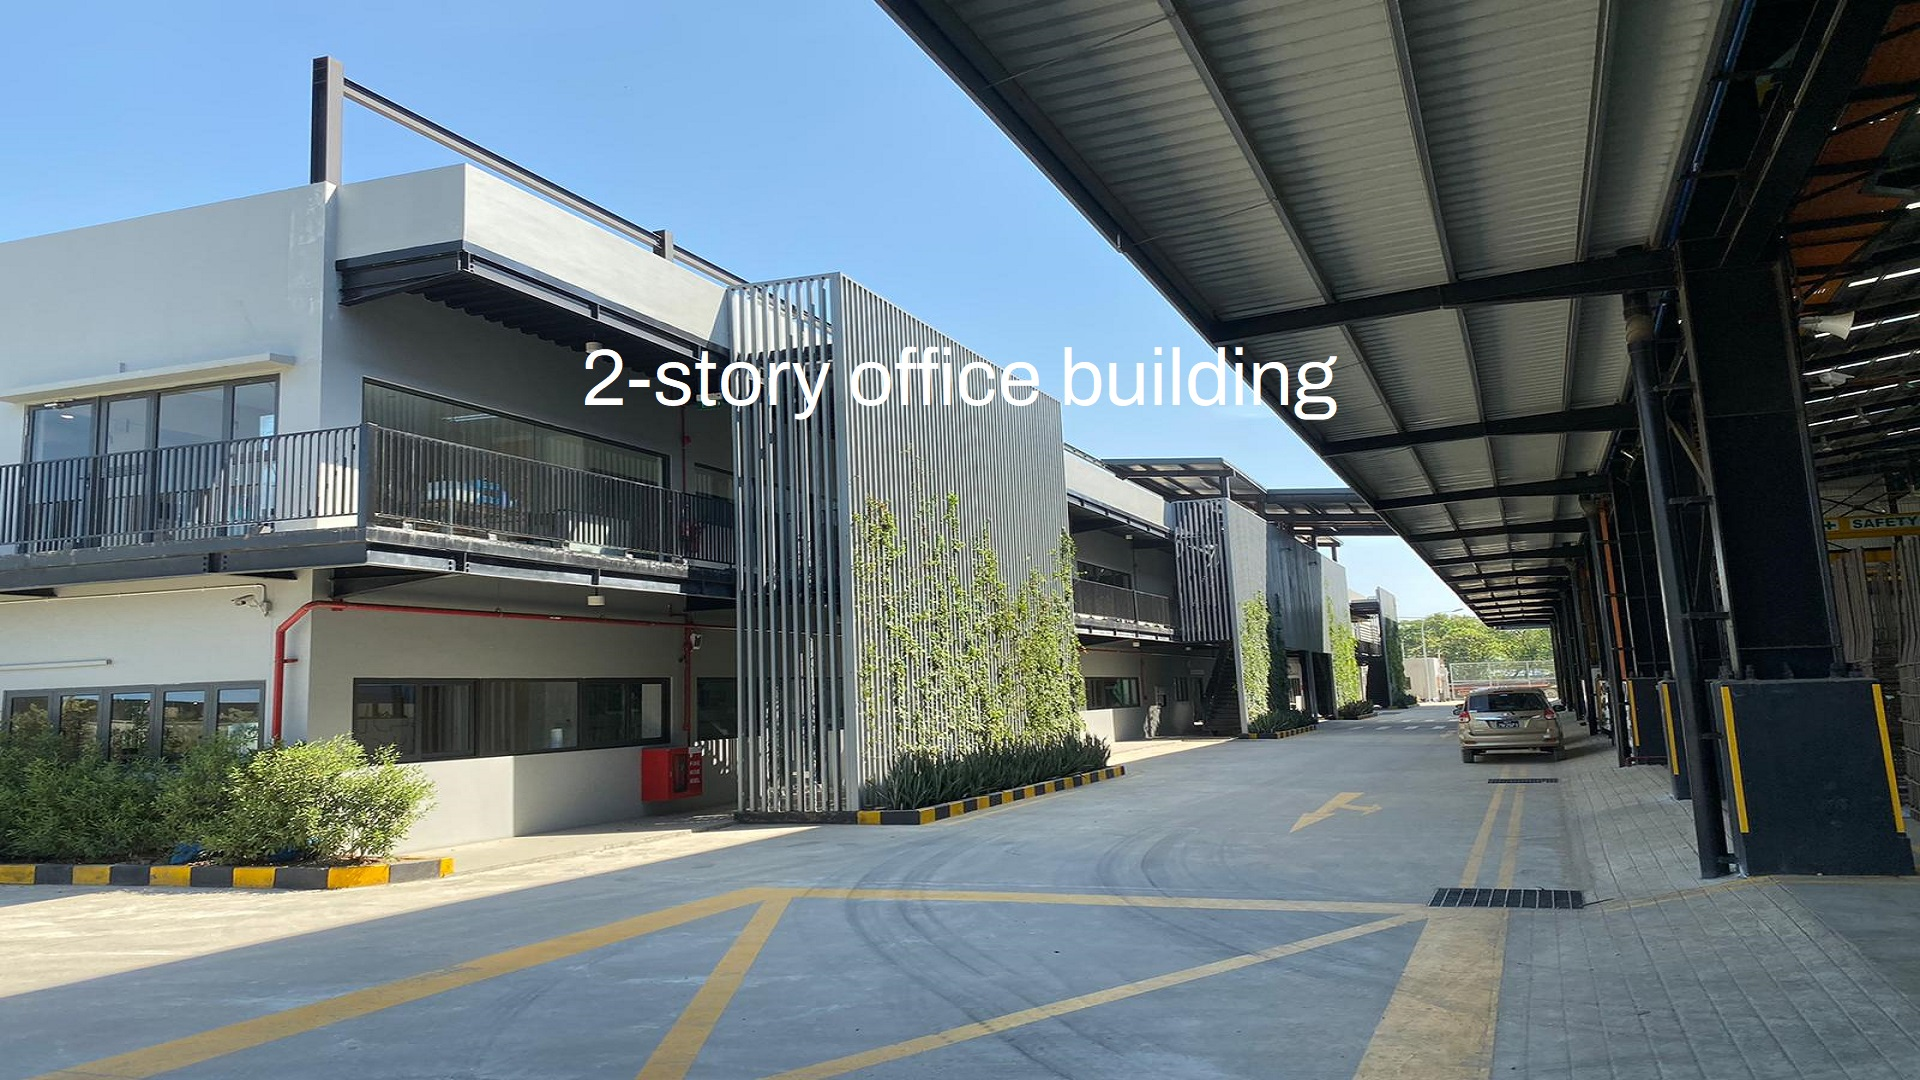 2-story office building